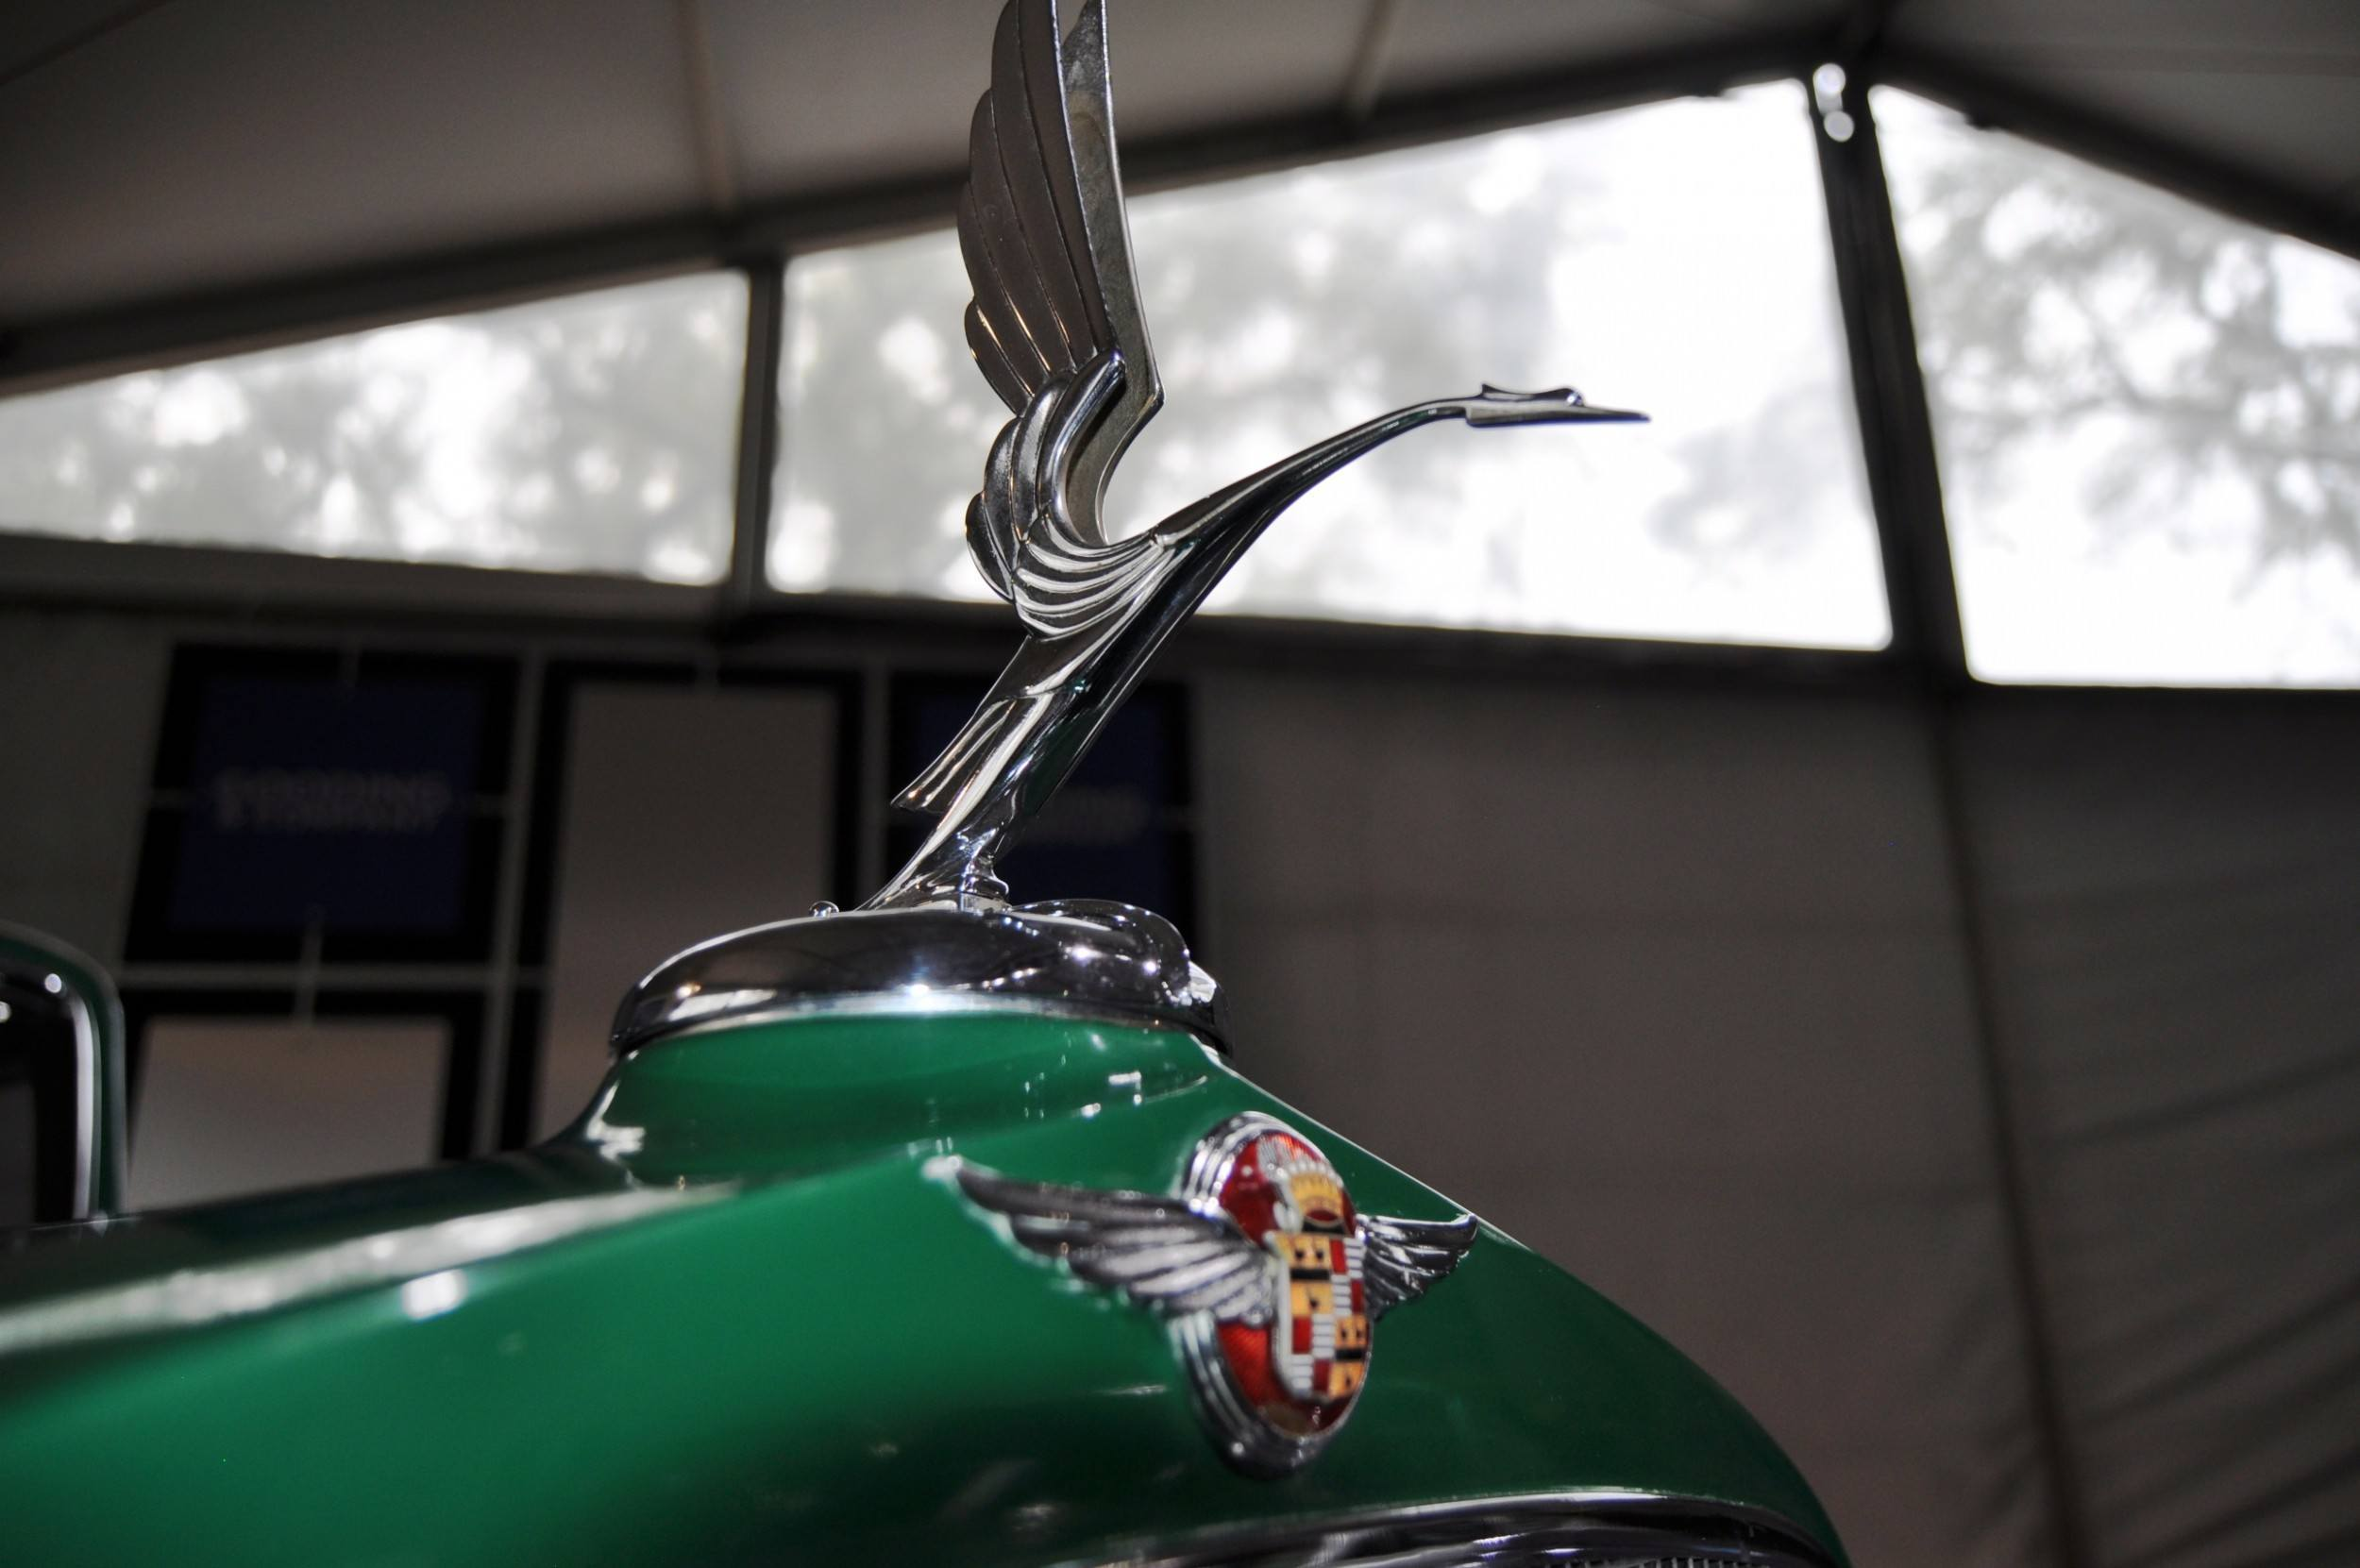 Coolest Vintage Hood Ornaments -- RM Auctions Amelia Island 2014 -- Pierce-Arrow, Cadillac, Stutz, Chrysler, Ford, Aston-Martin, Bentley and More 3